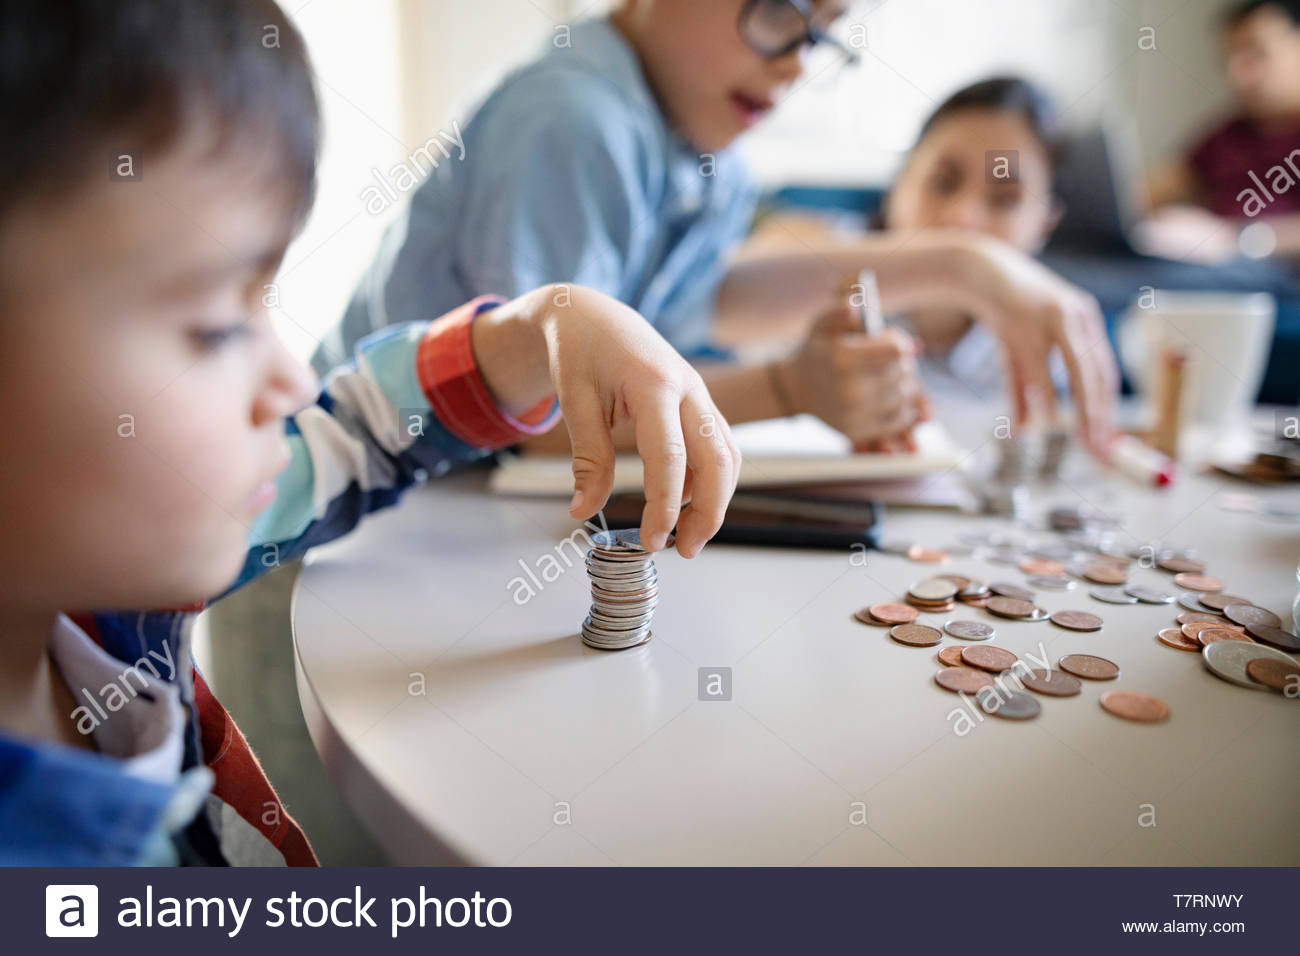 Brothers and sister counting allowance money - Stock Image